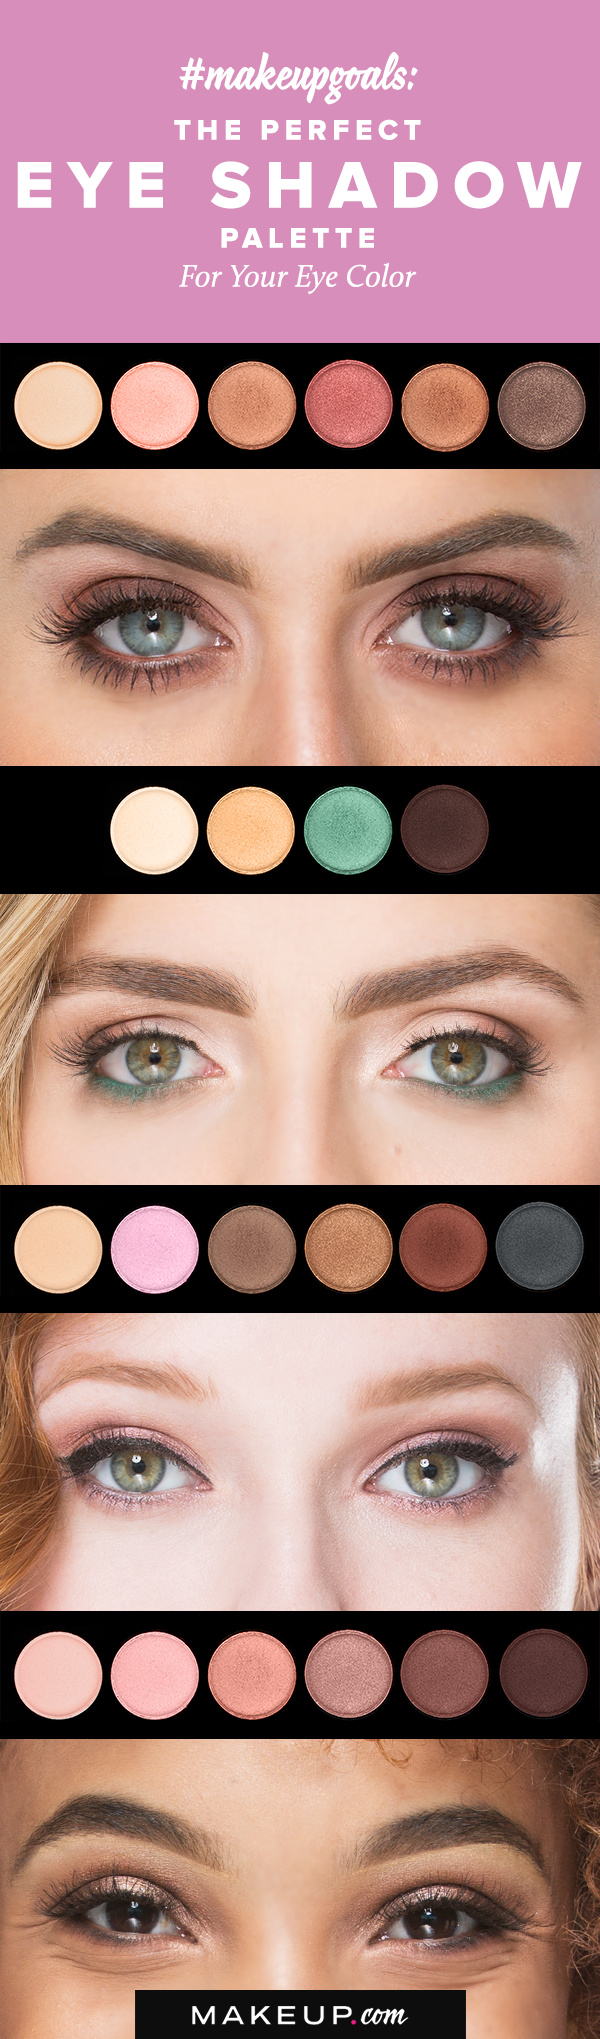 the best eyeshadow palette for your eye color   eye makeup